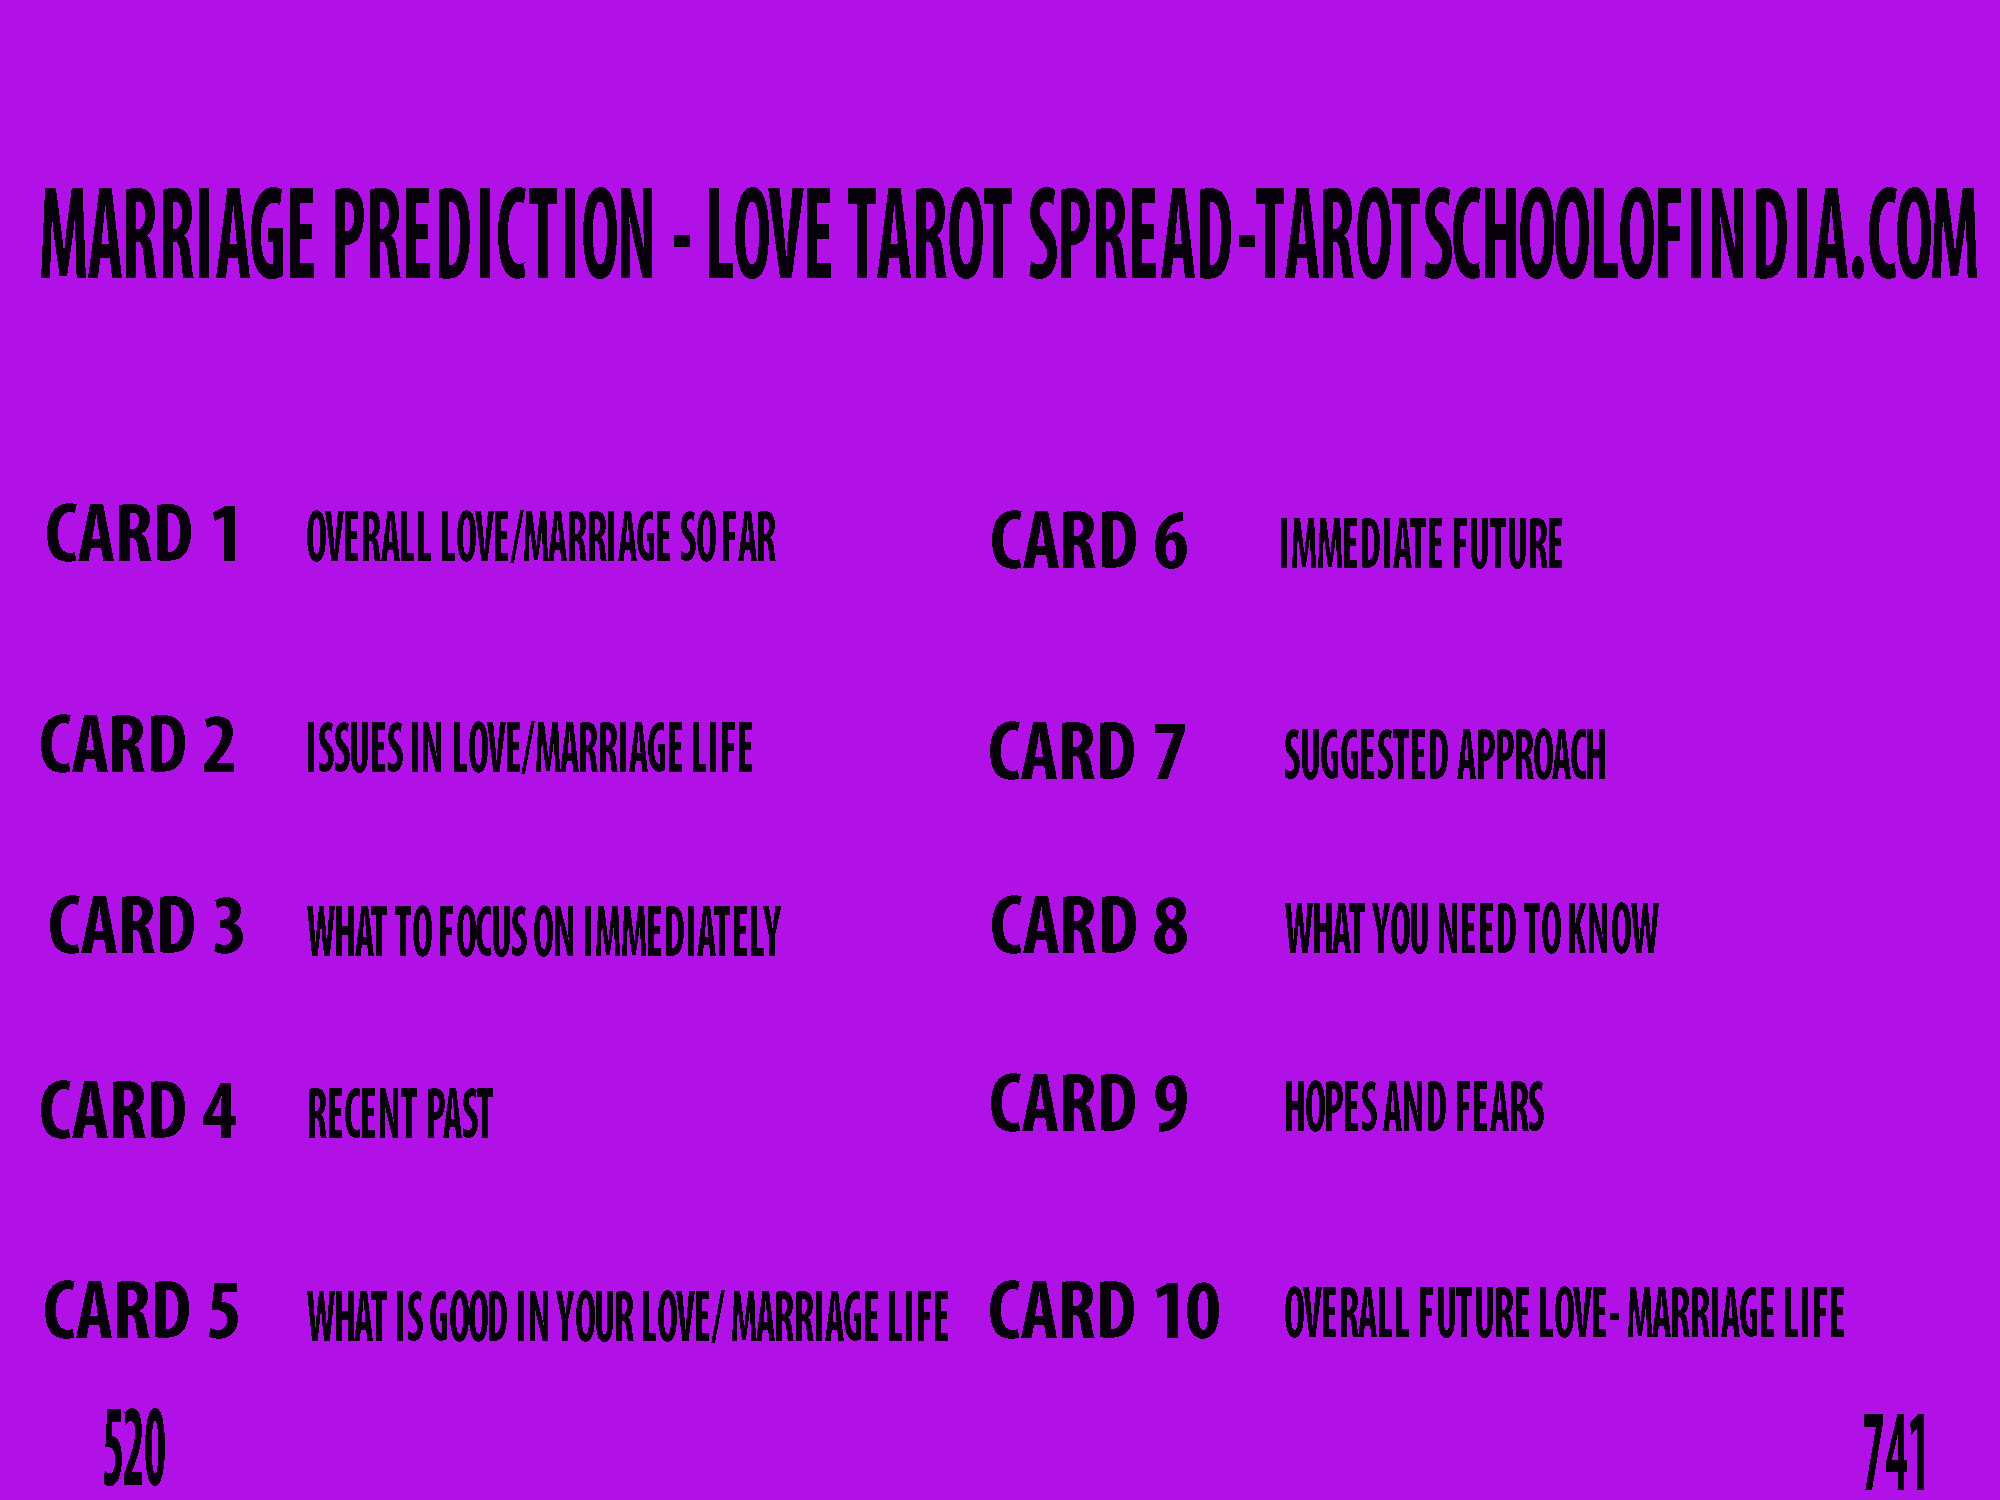 Image Showing Love Tarot Spread - Marriage Prediction